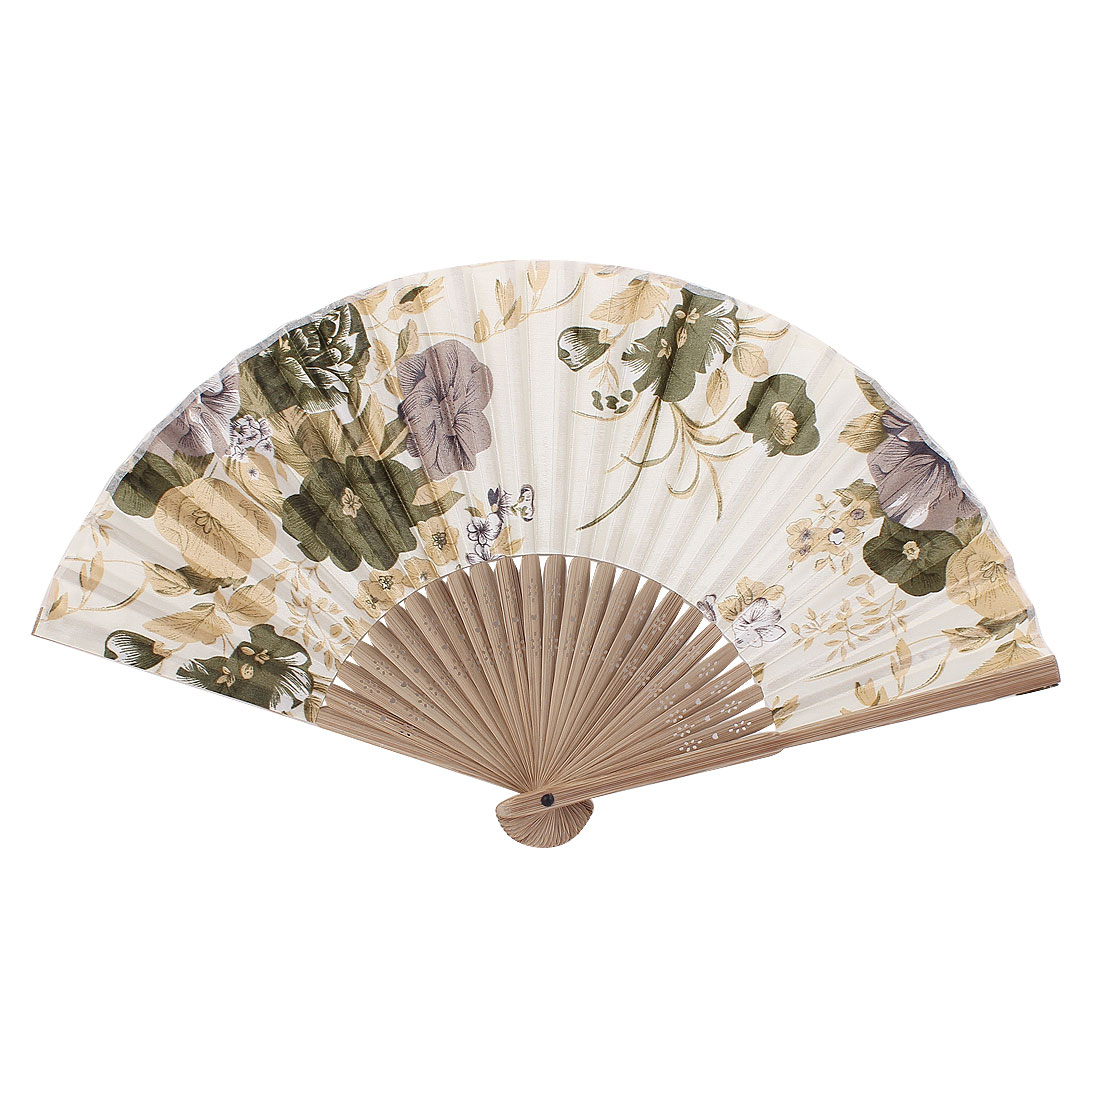 Wood Frame Flower Pattern Summer Dancing Folding Hand Fan Off White Beige